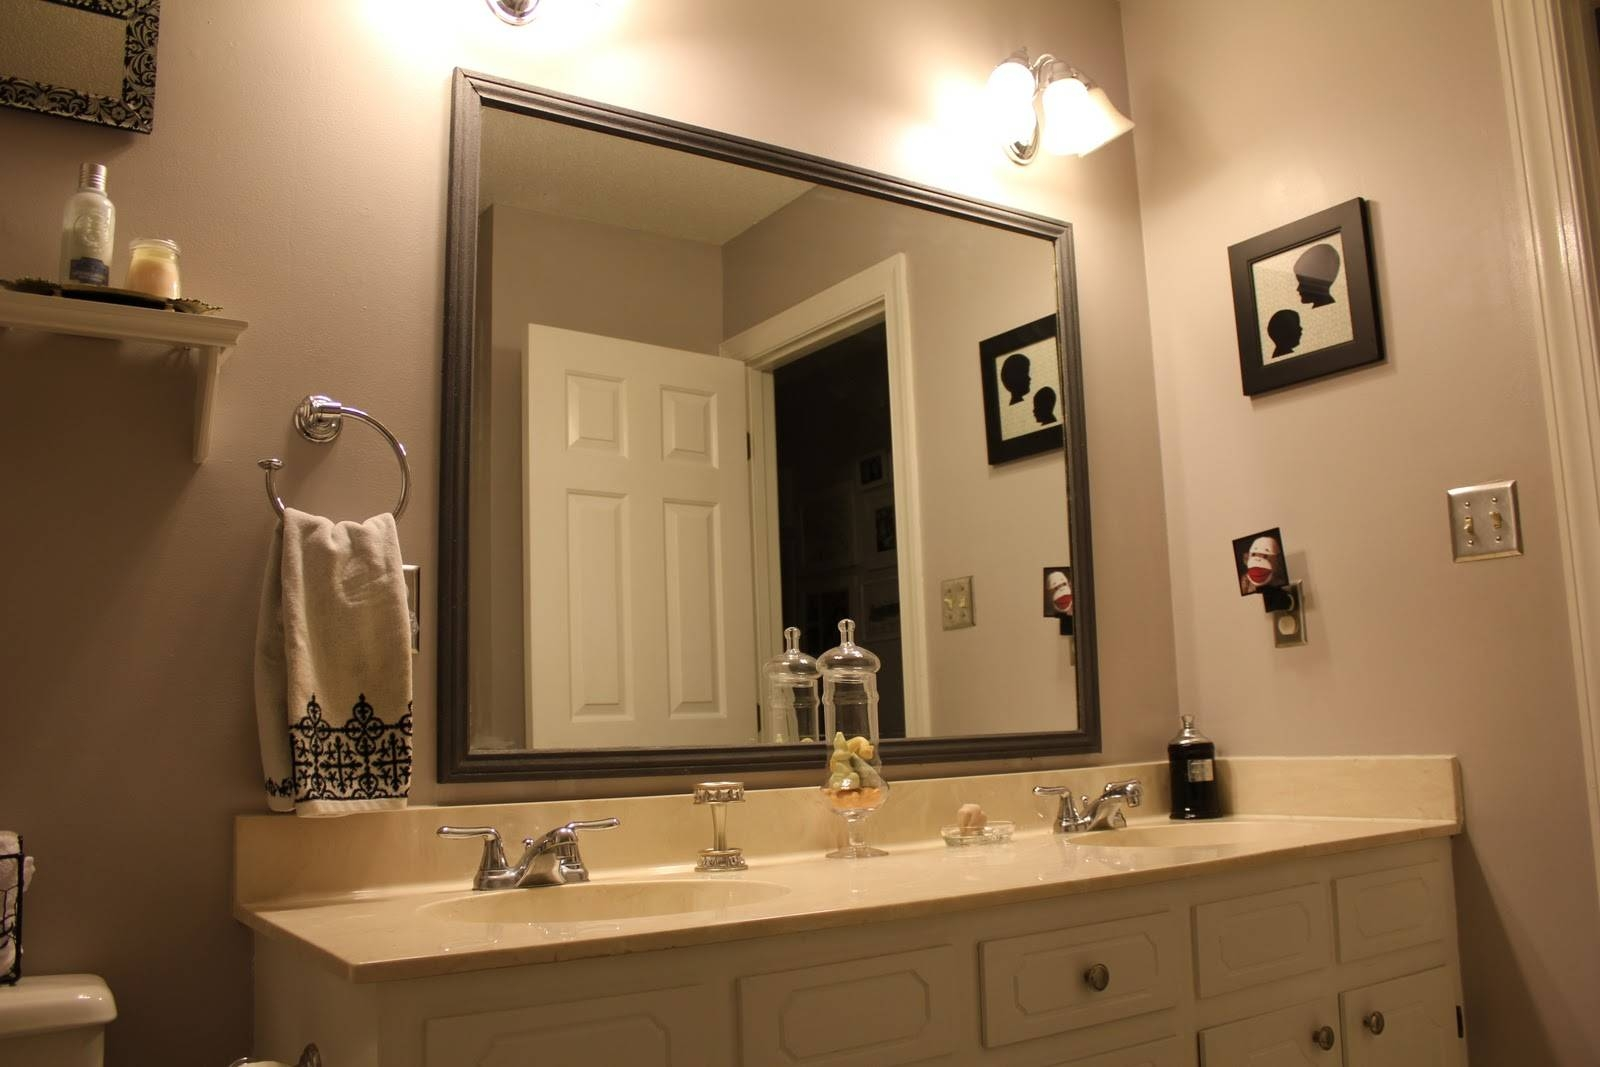 Awesome Wrought Iron Framed Bathroom Mirrors 42 About Remodel With within Wrought Iron Bathroom Mirrors (Image 7 of 15)